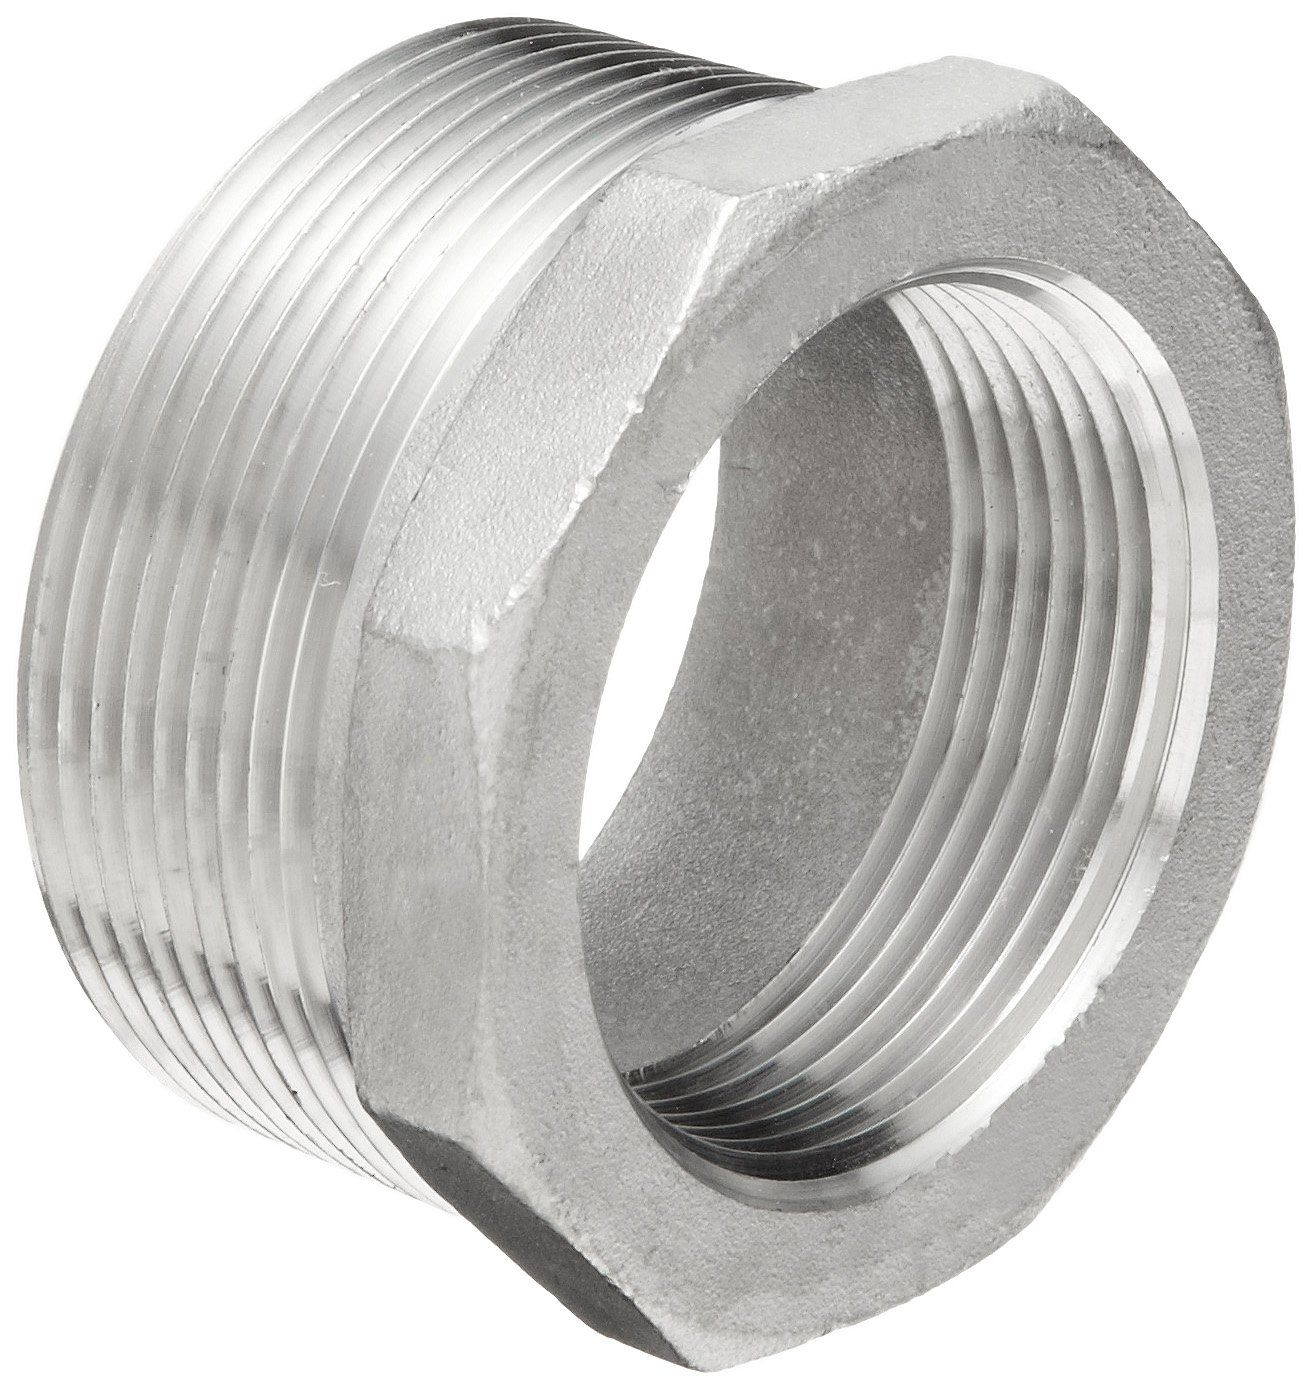 Dixon HB2015SS Stainless Steel 316 Pipe and Welding Fitting, Reducer Hex Bushing, 2'' NPT Male x 1-1/2'' NPT Female